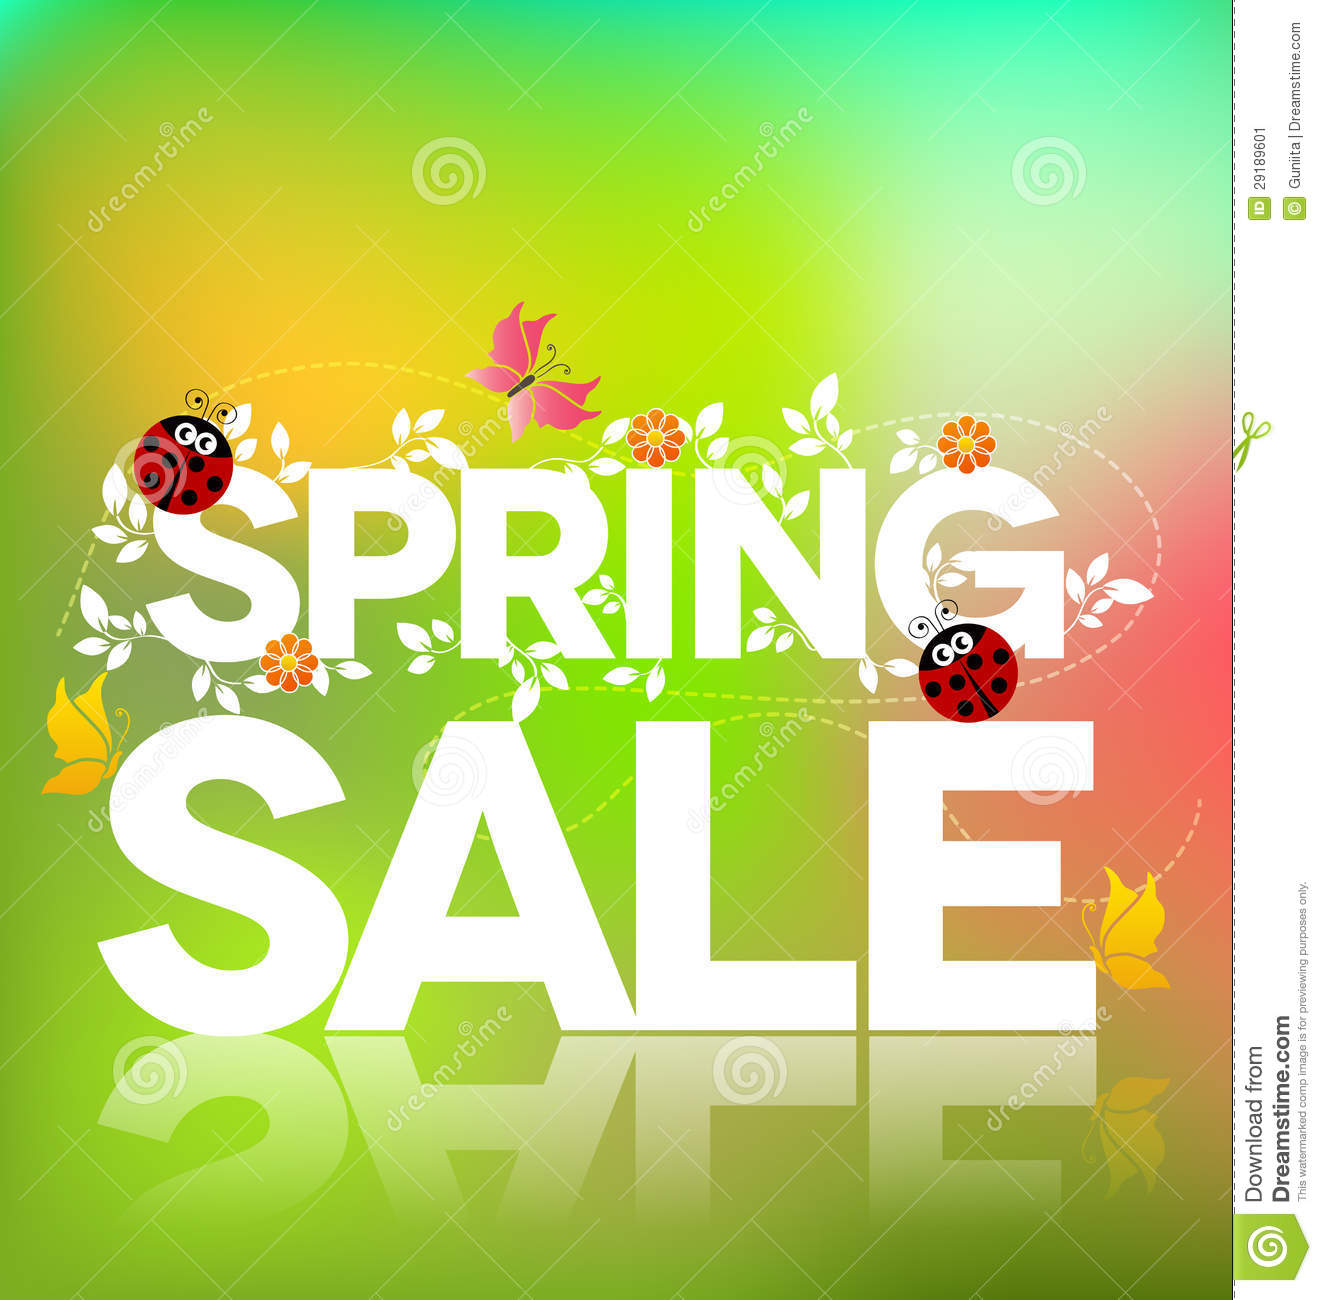 Spring Sale: Spring Sale Poster Stock Image